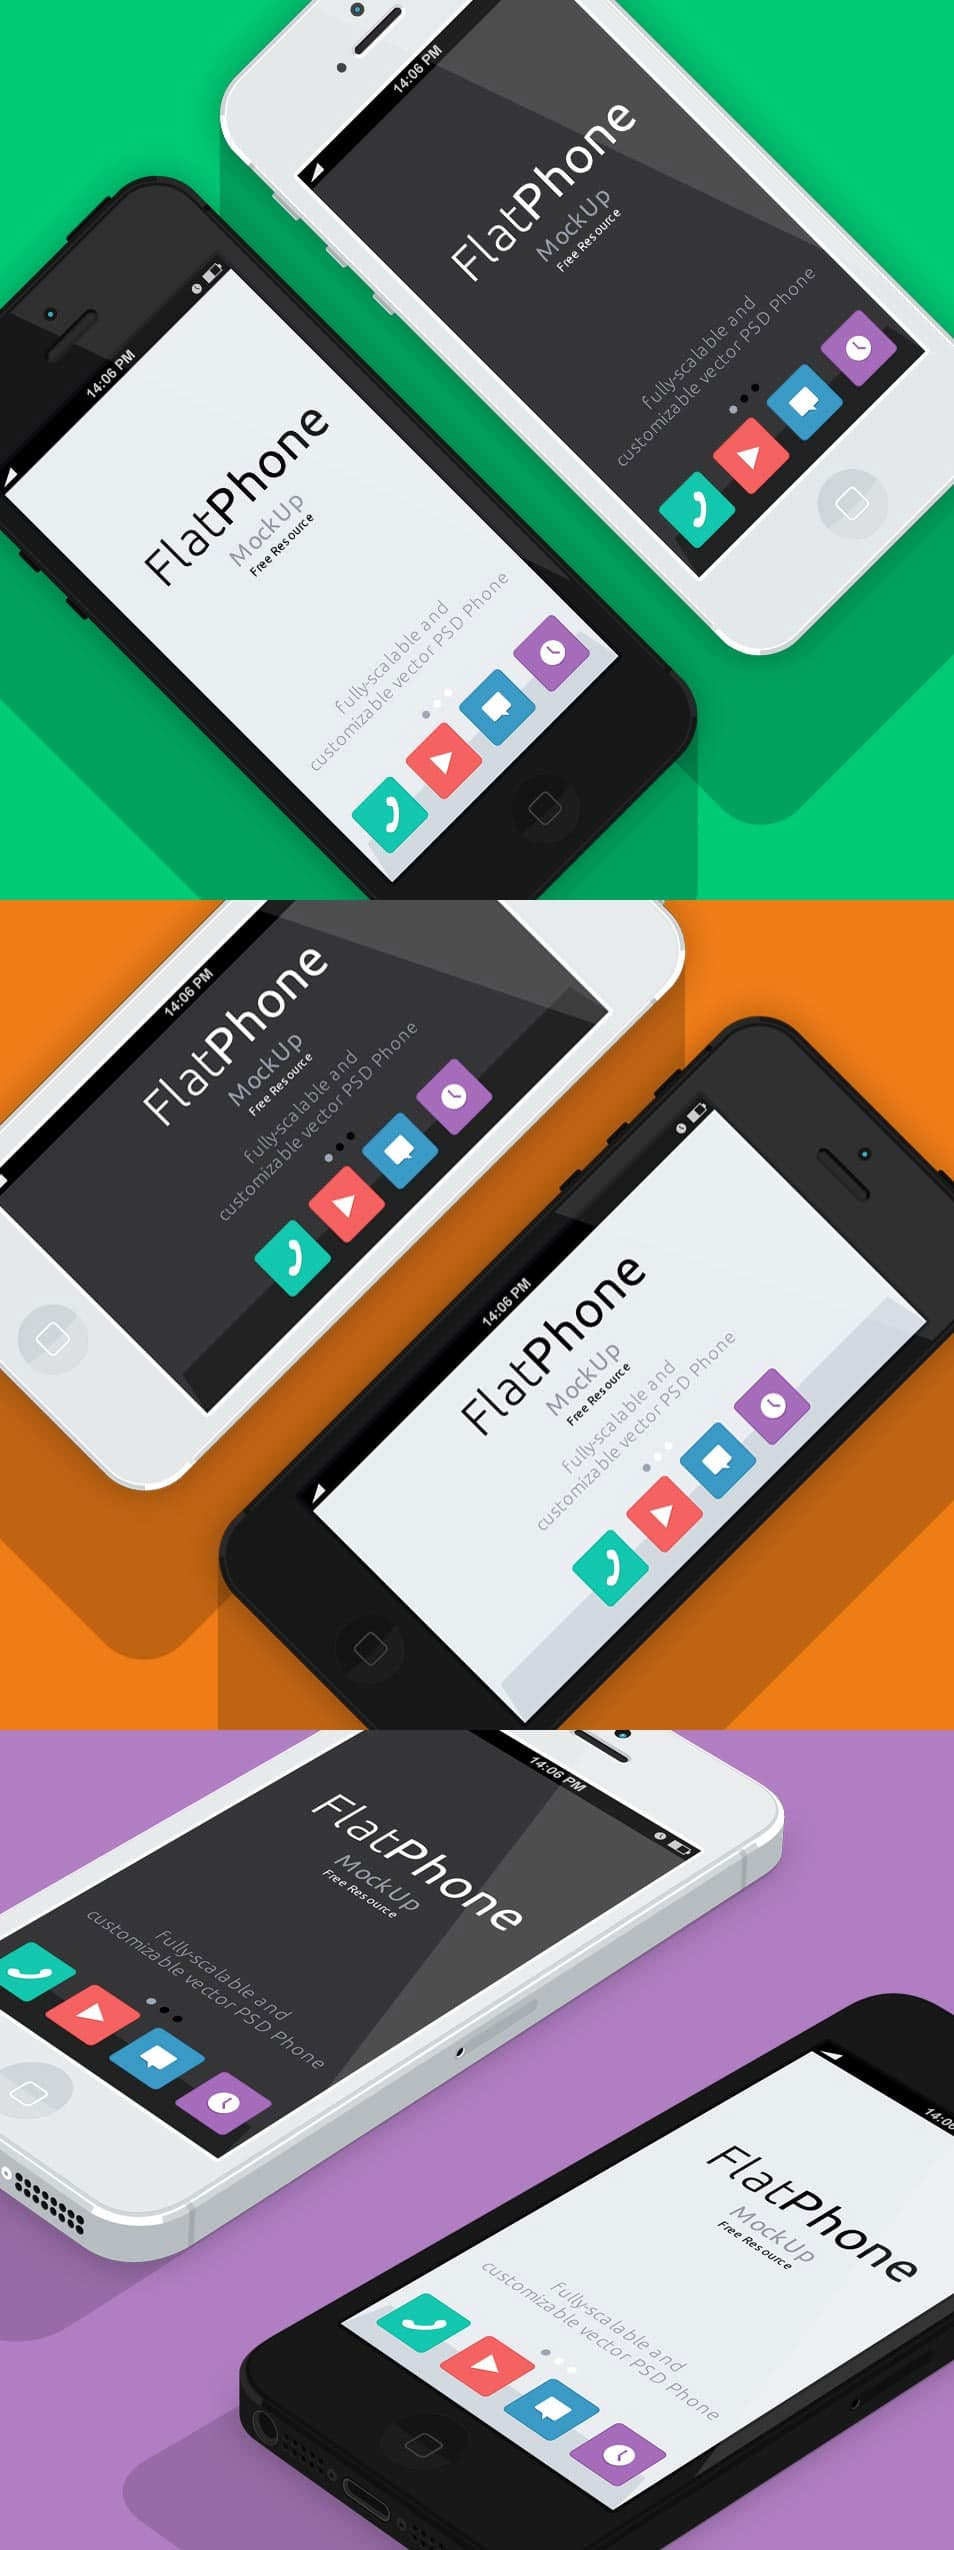 iPhone 5 Flat Design Mockup